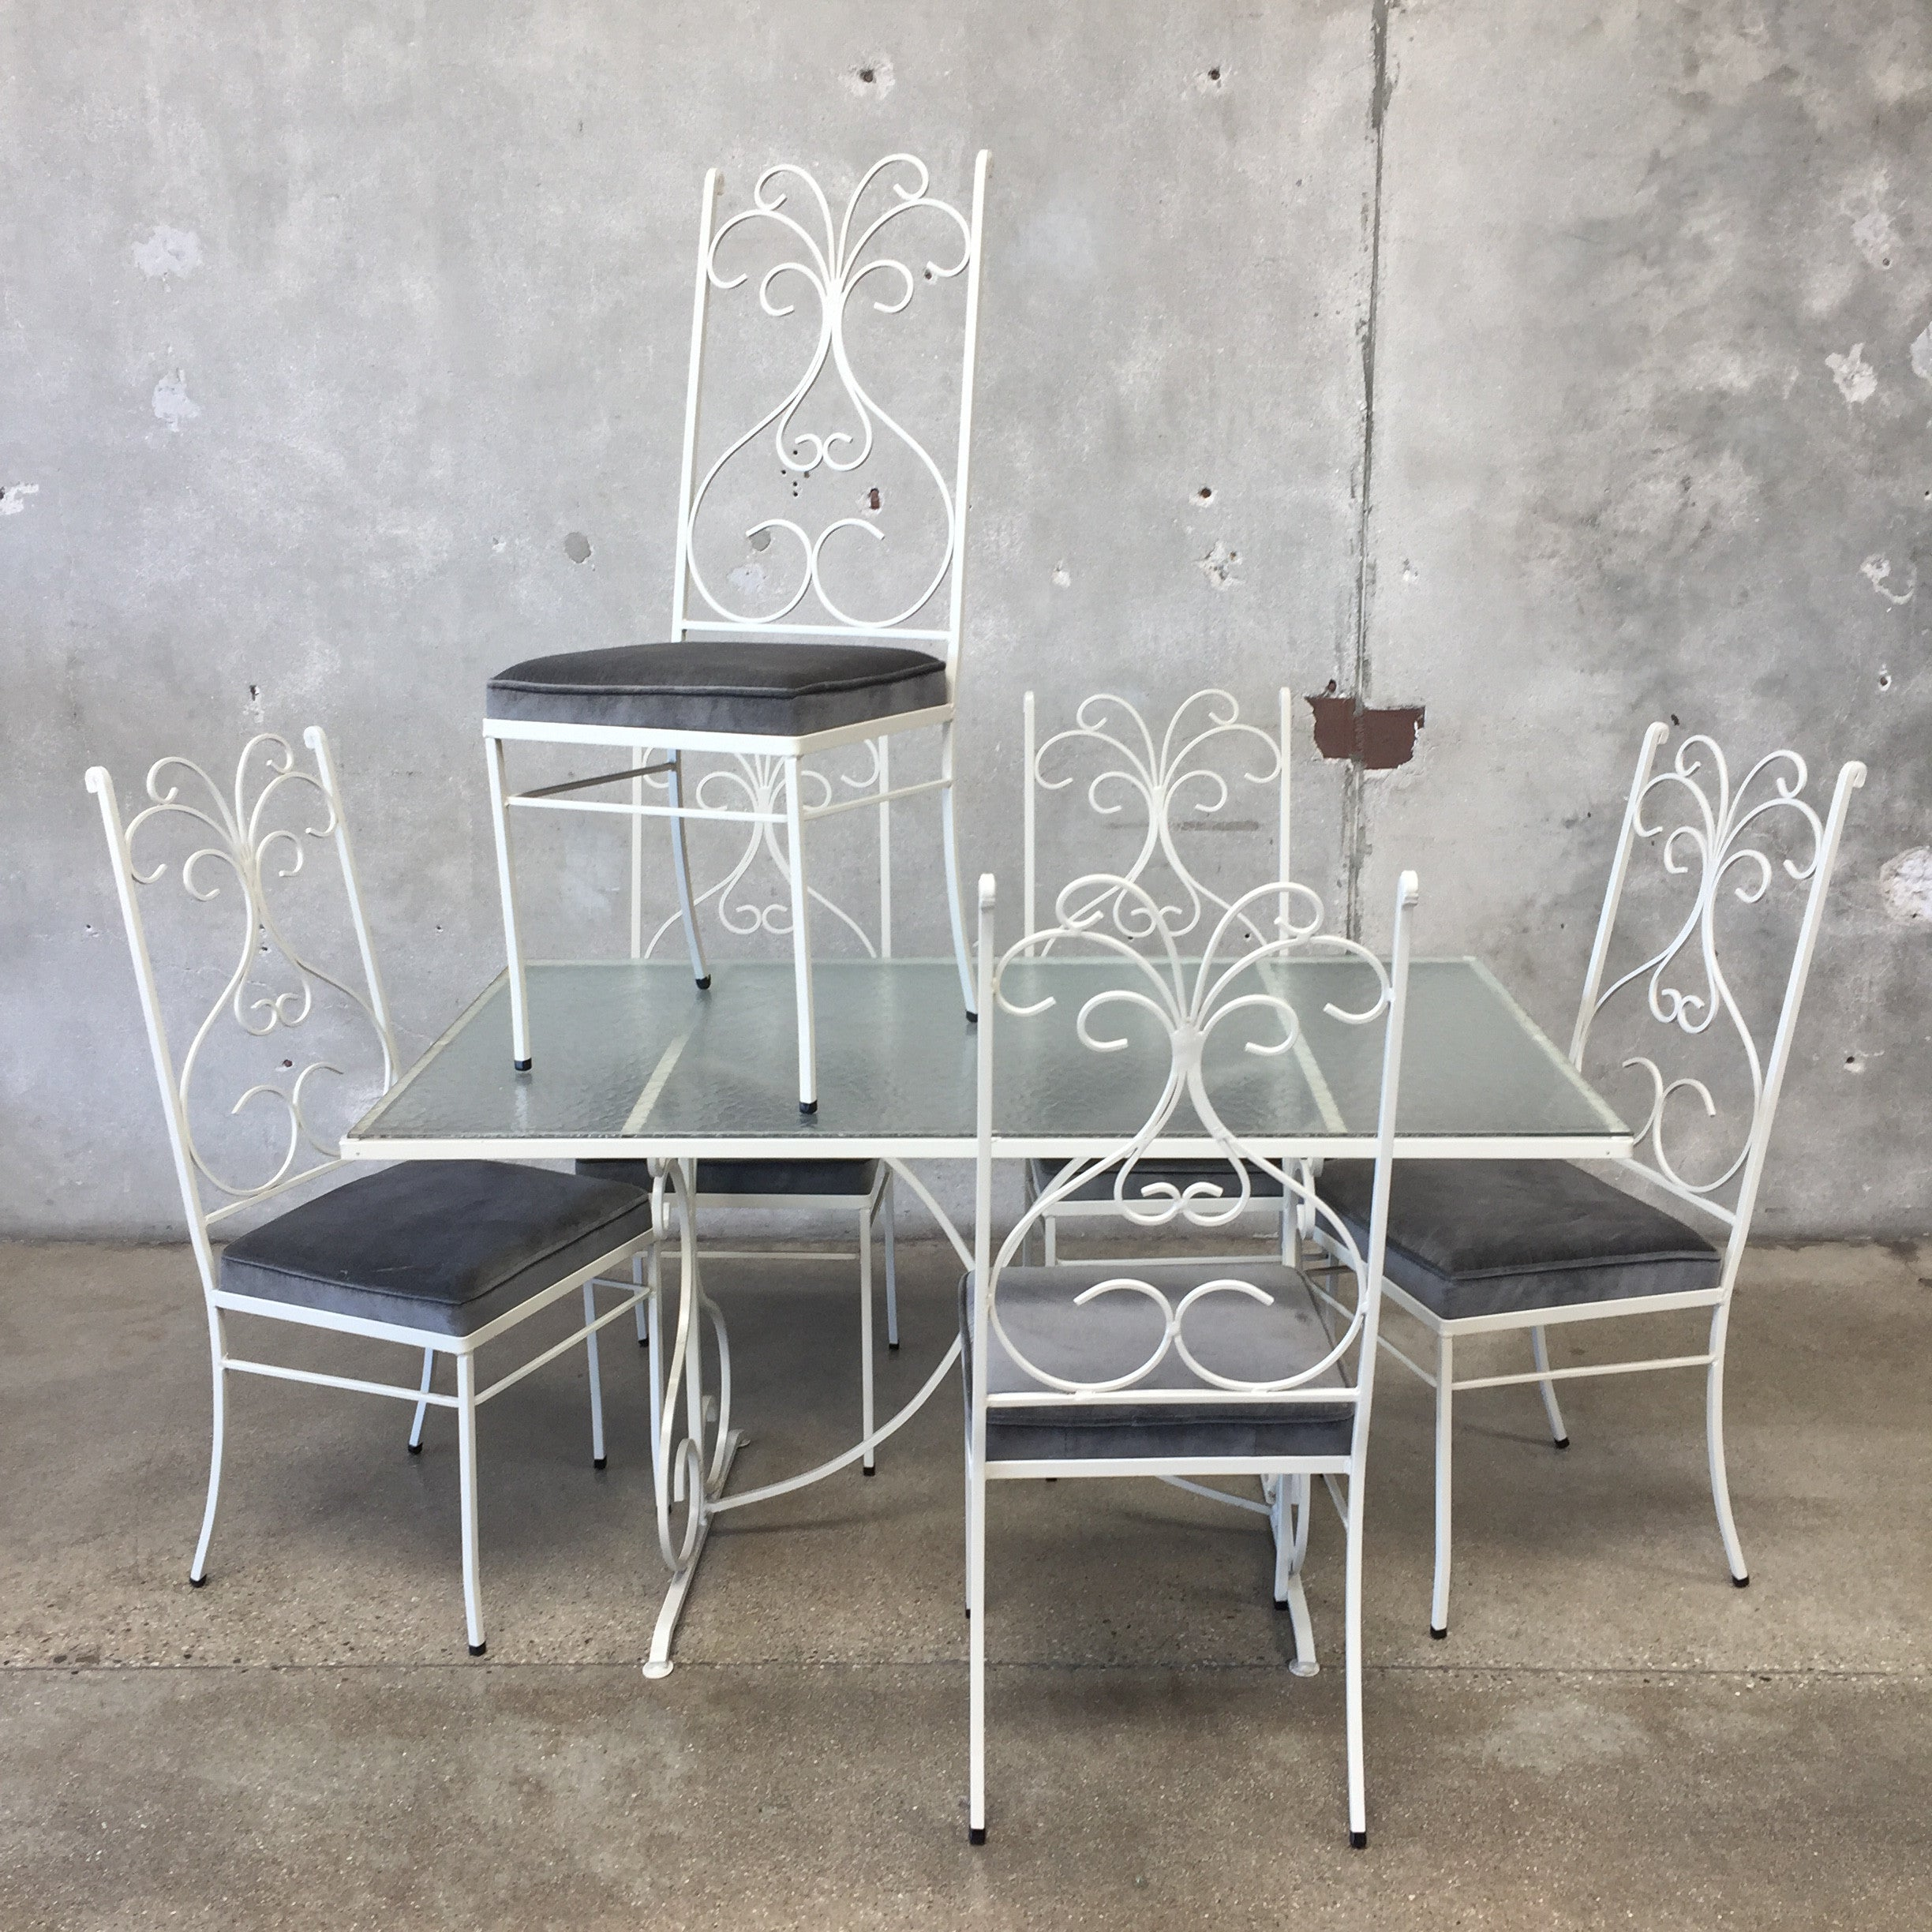 Regency Wrought Iron Glass Patio Table with Set of 6 Chairs